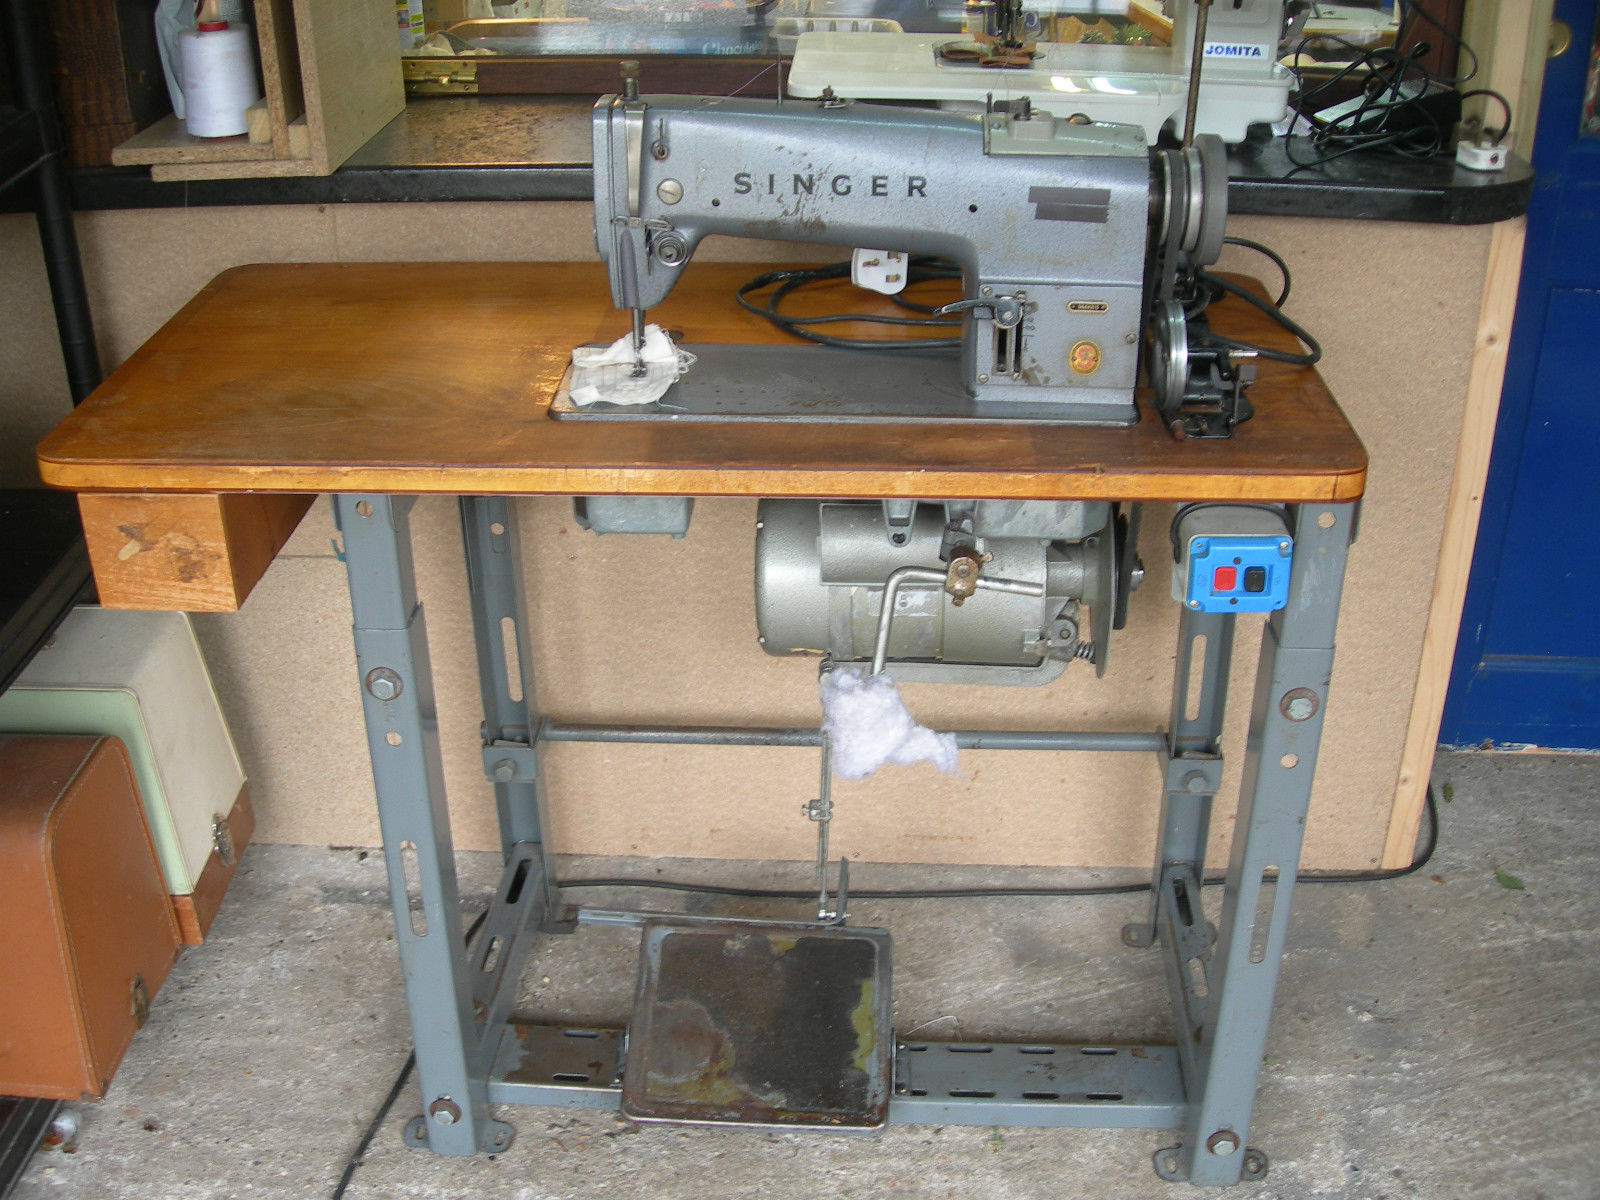 sewer sewing machine